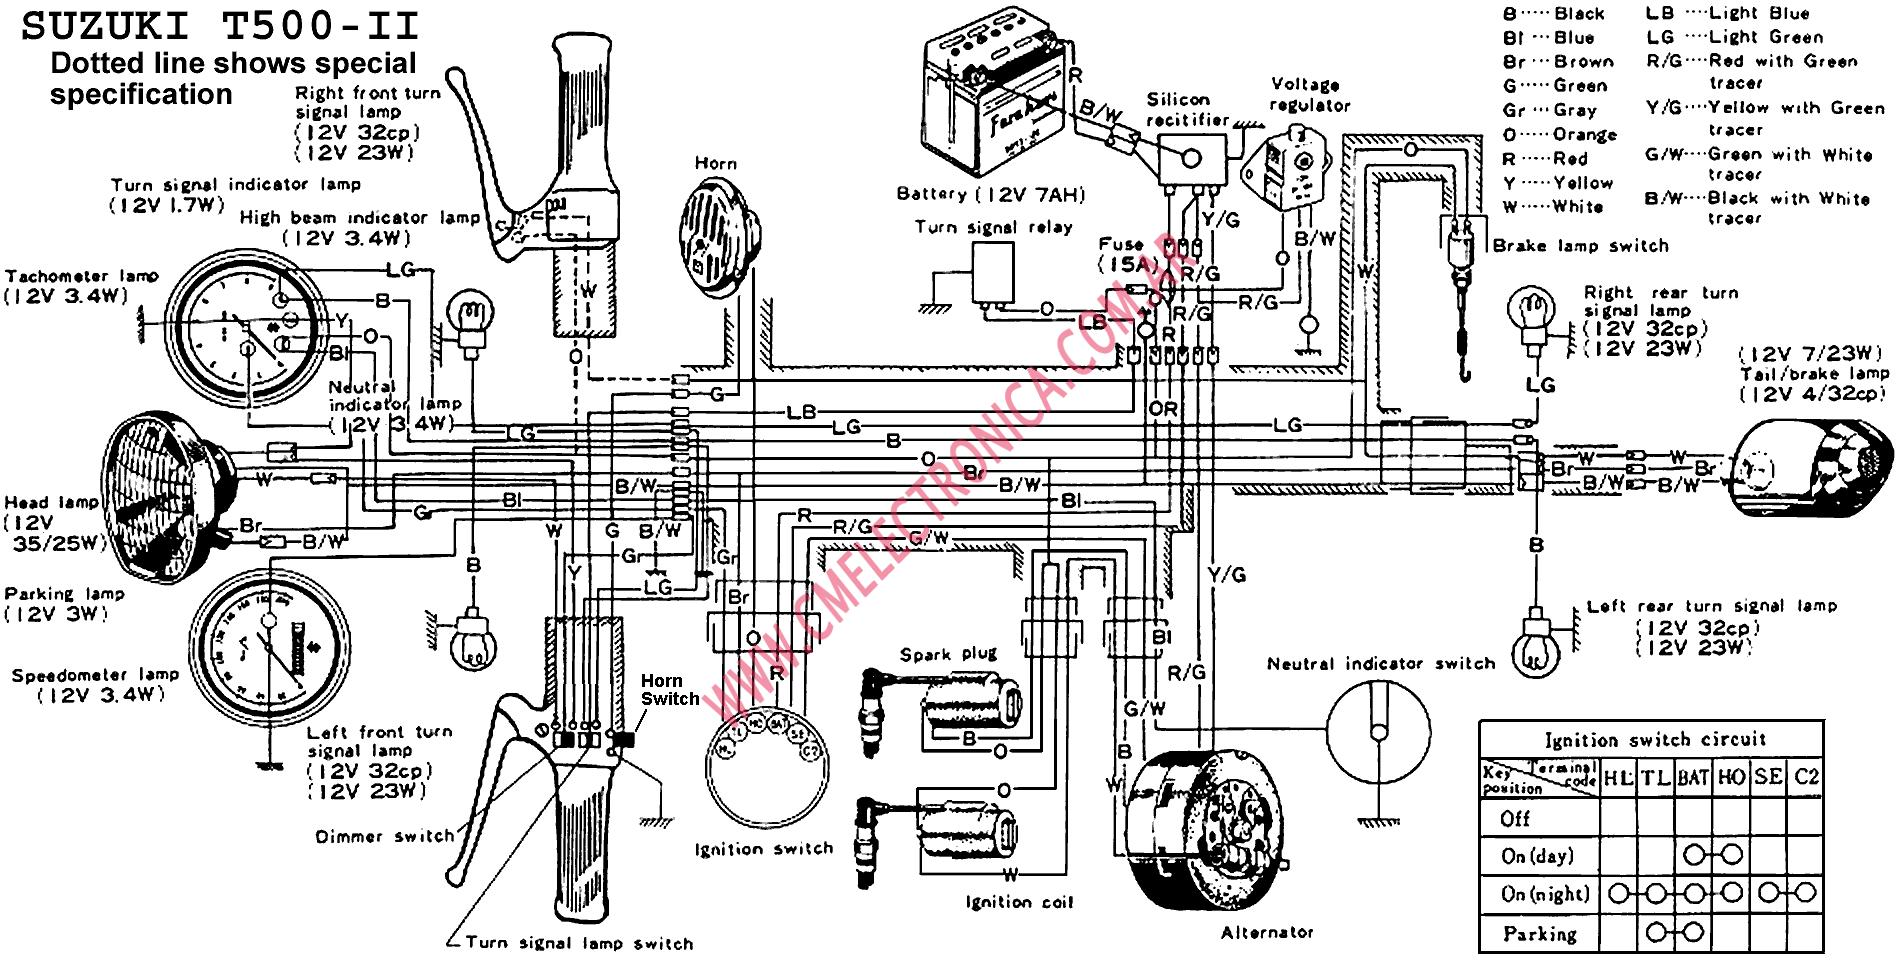 Suzuki Gt500 Wiring Diagram Auto Electrical For Cars Diagrama T500 Ii Large